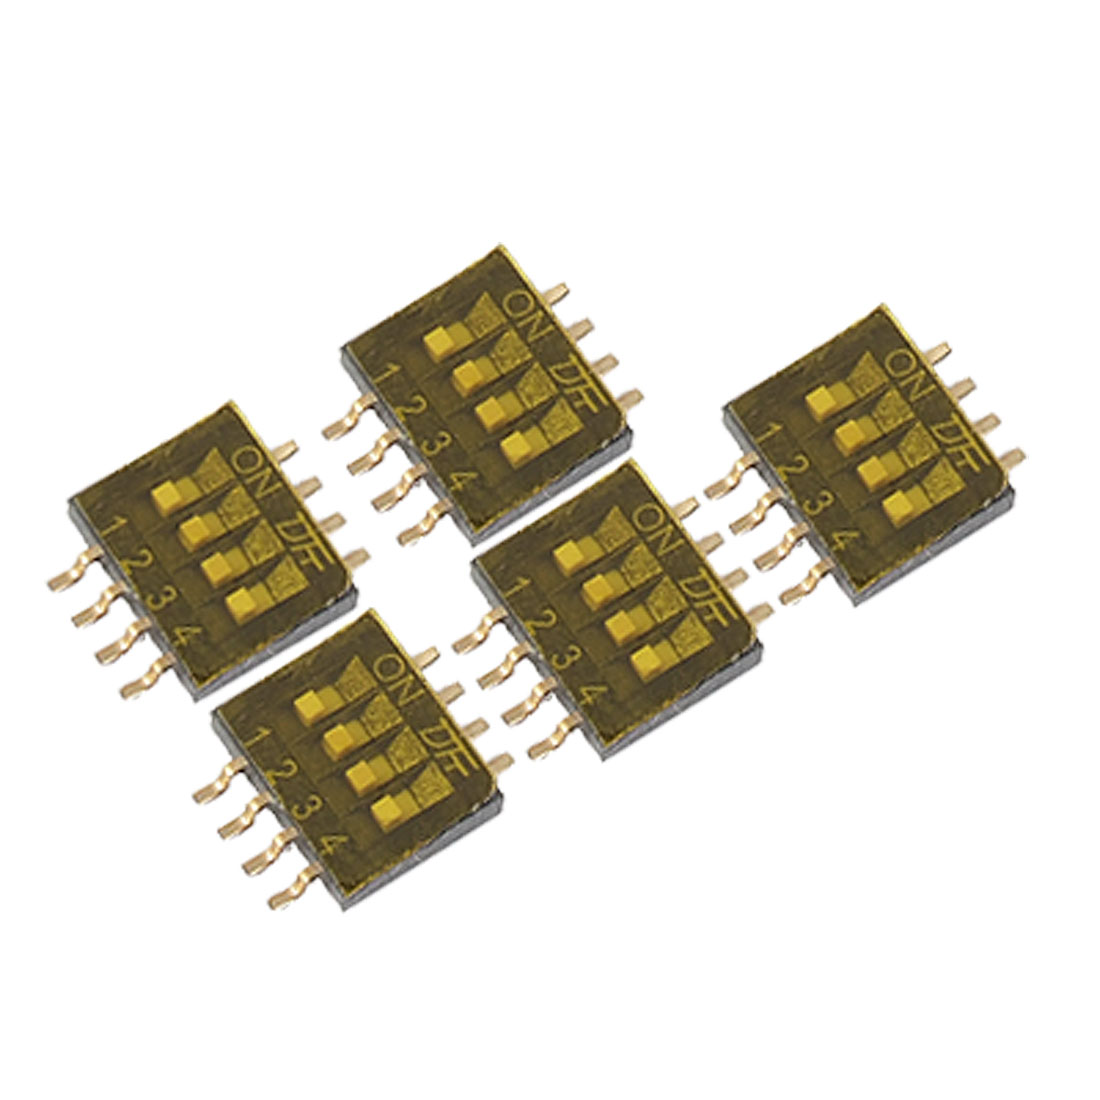 5 Pcs 4 Position 1.27mm Pin Spacing SMT SMD Type DIP Switch